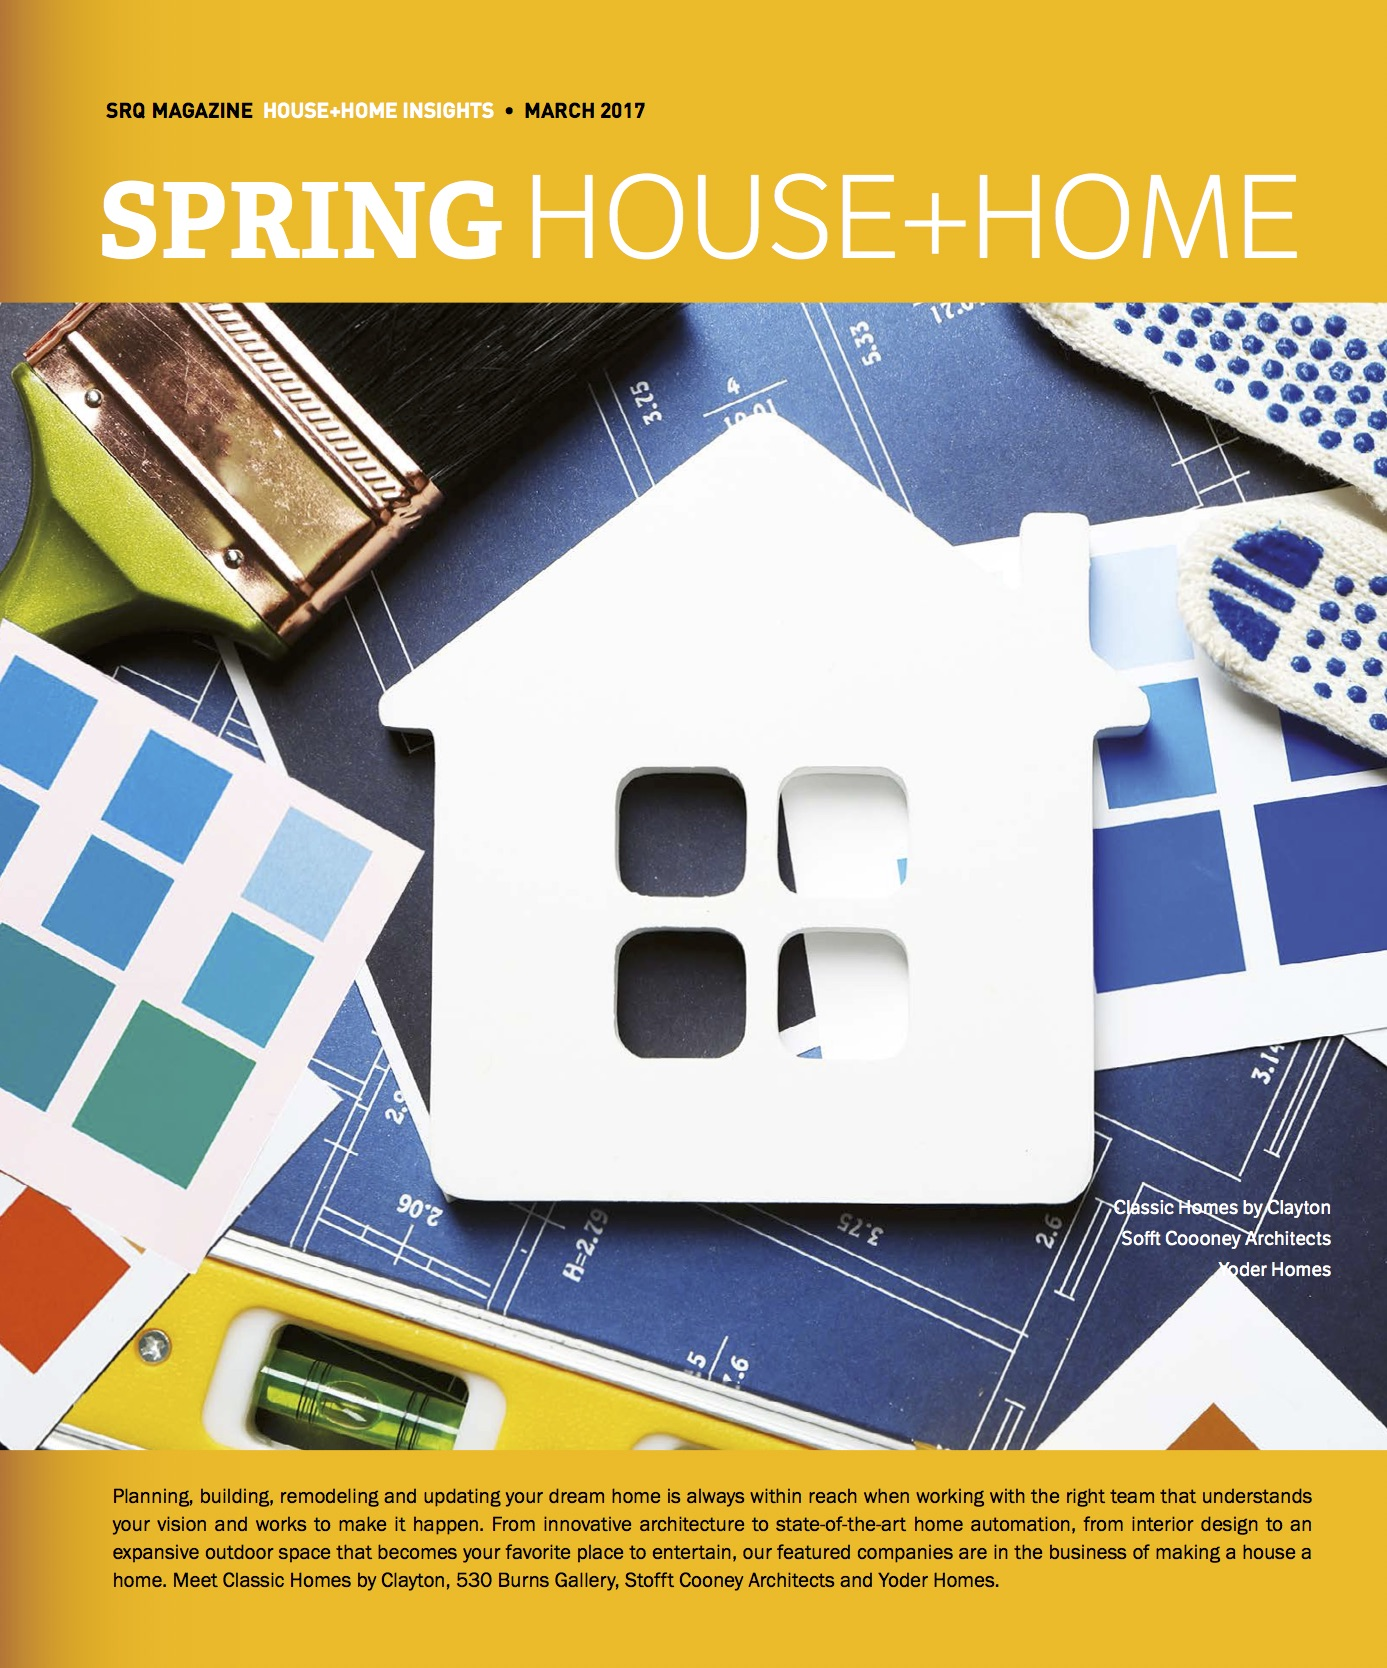 Spring House + Home